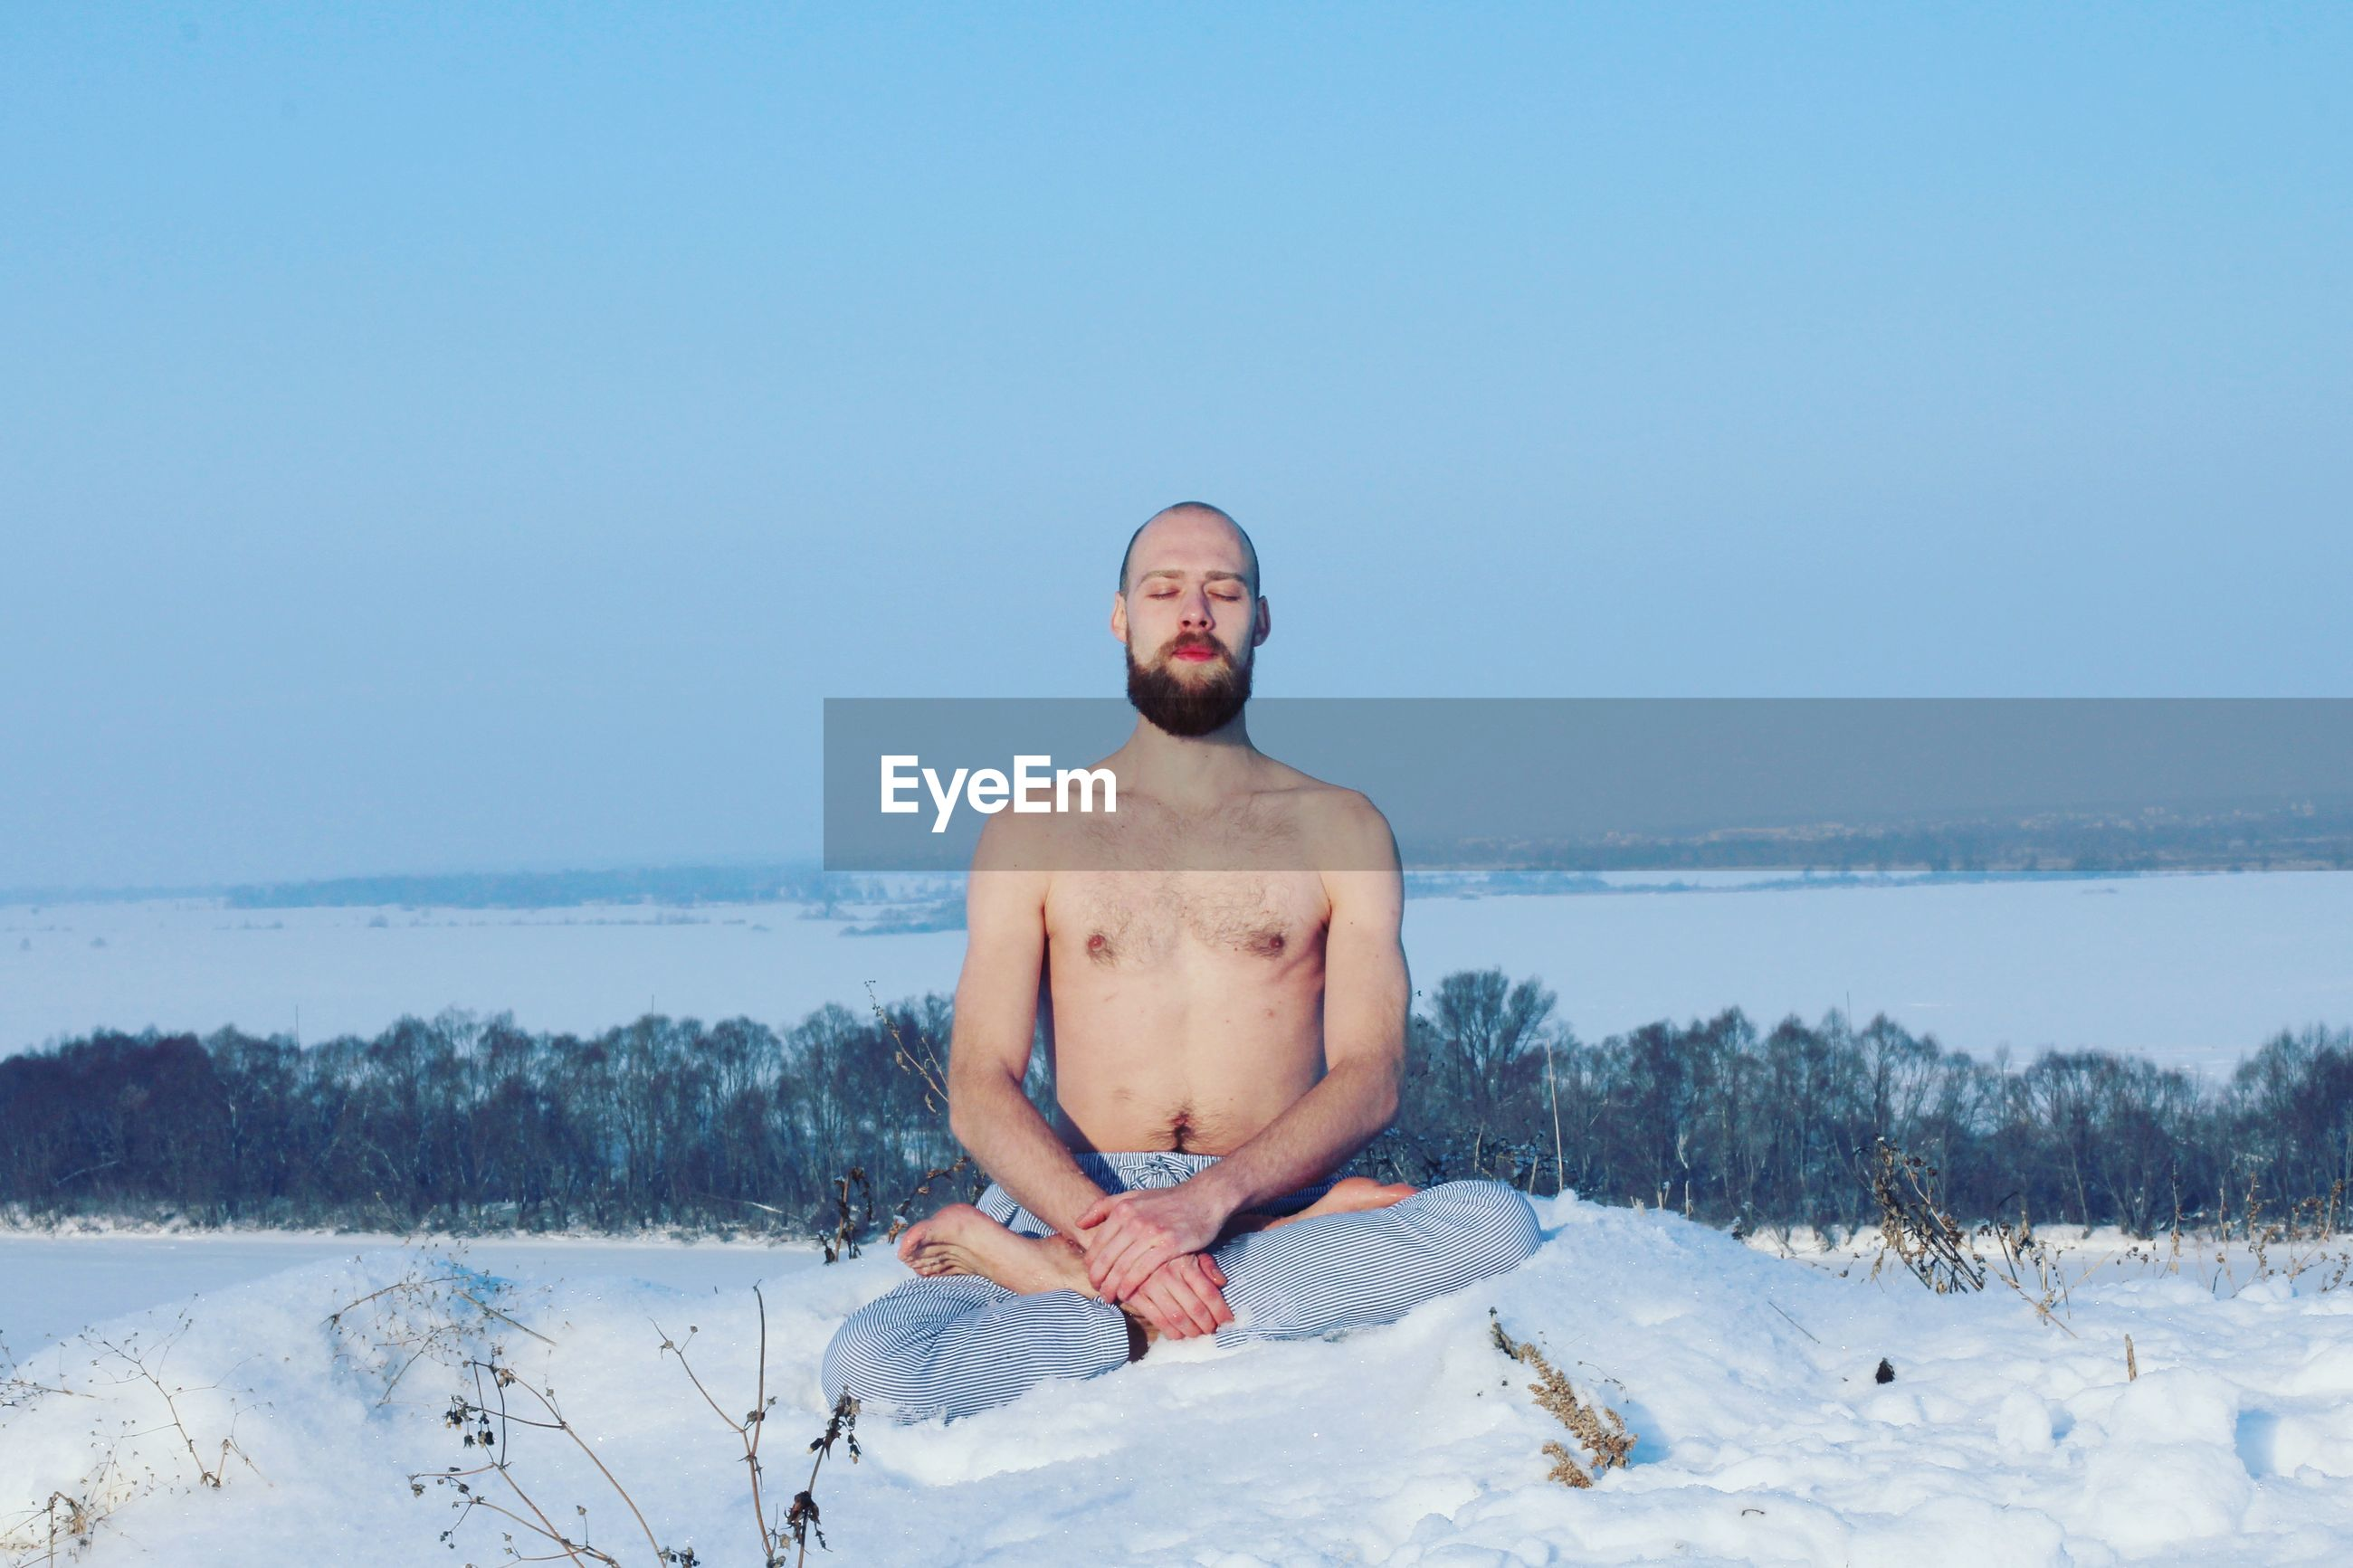 Shirtless young man meditating on snow against clear sky